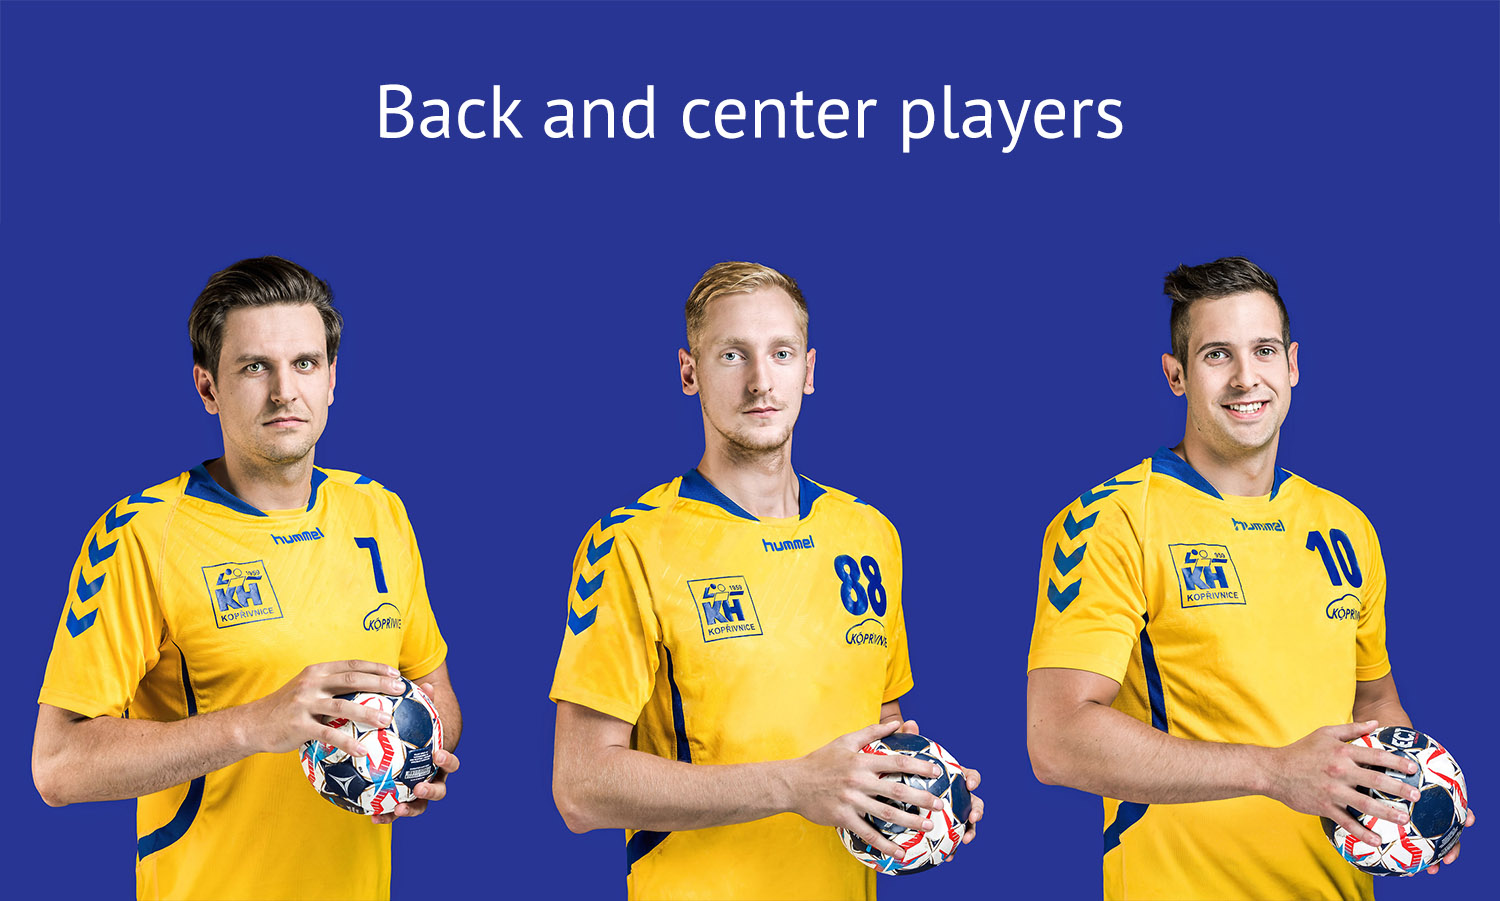 back_and_center_players_01.jpg